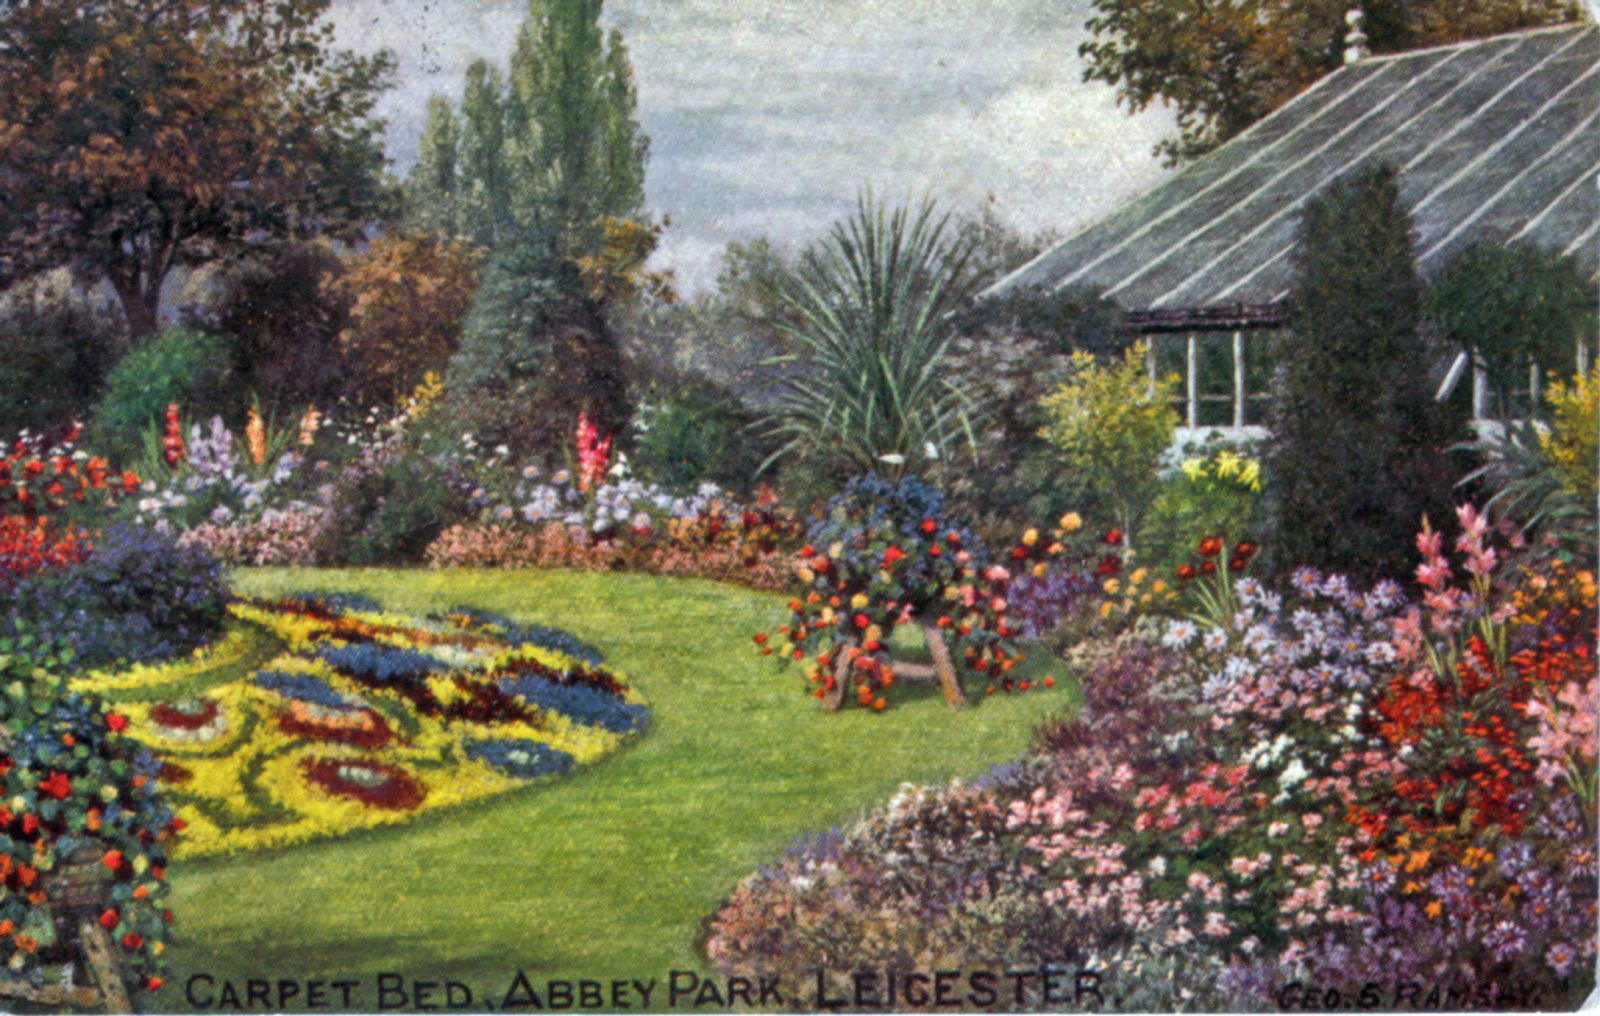 Abbey Park, Leicester. 1901-1920: The greenhouse with carpet bedding. Taken from an oil painting by Geo. S. Ramsey. Franked 1905 (File:1022)